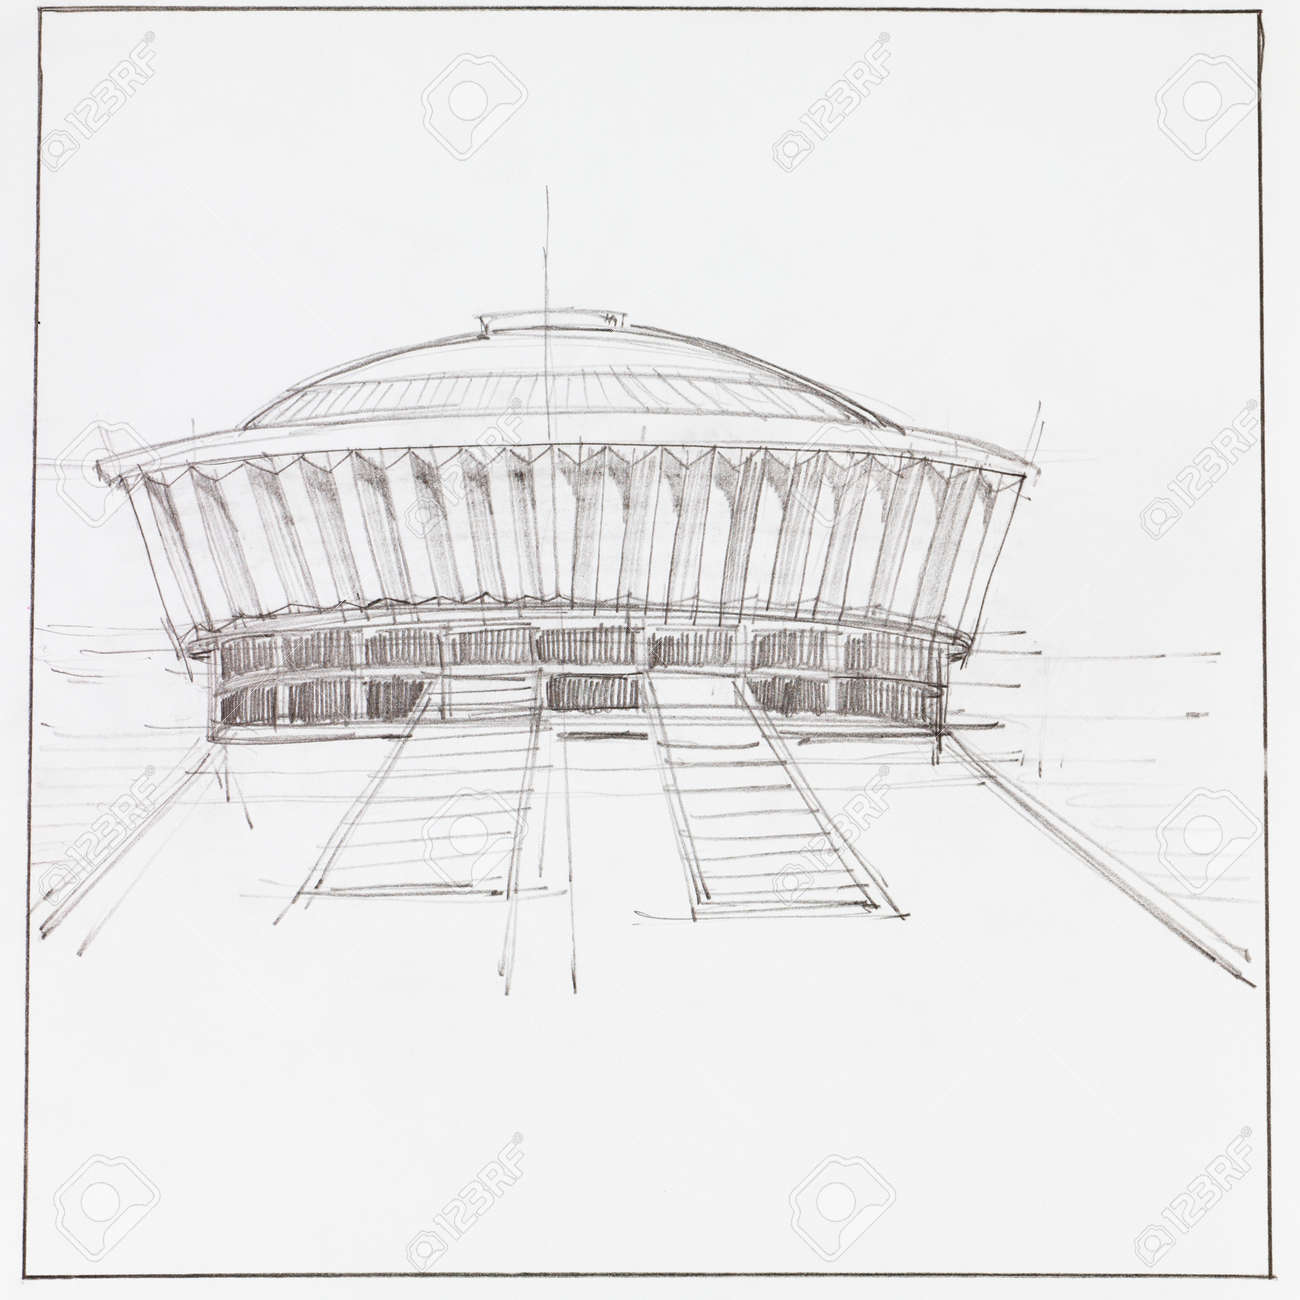 Modern Architecture Drawing hand drawn architectural drawing of modern pavillion building